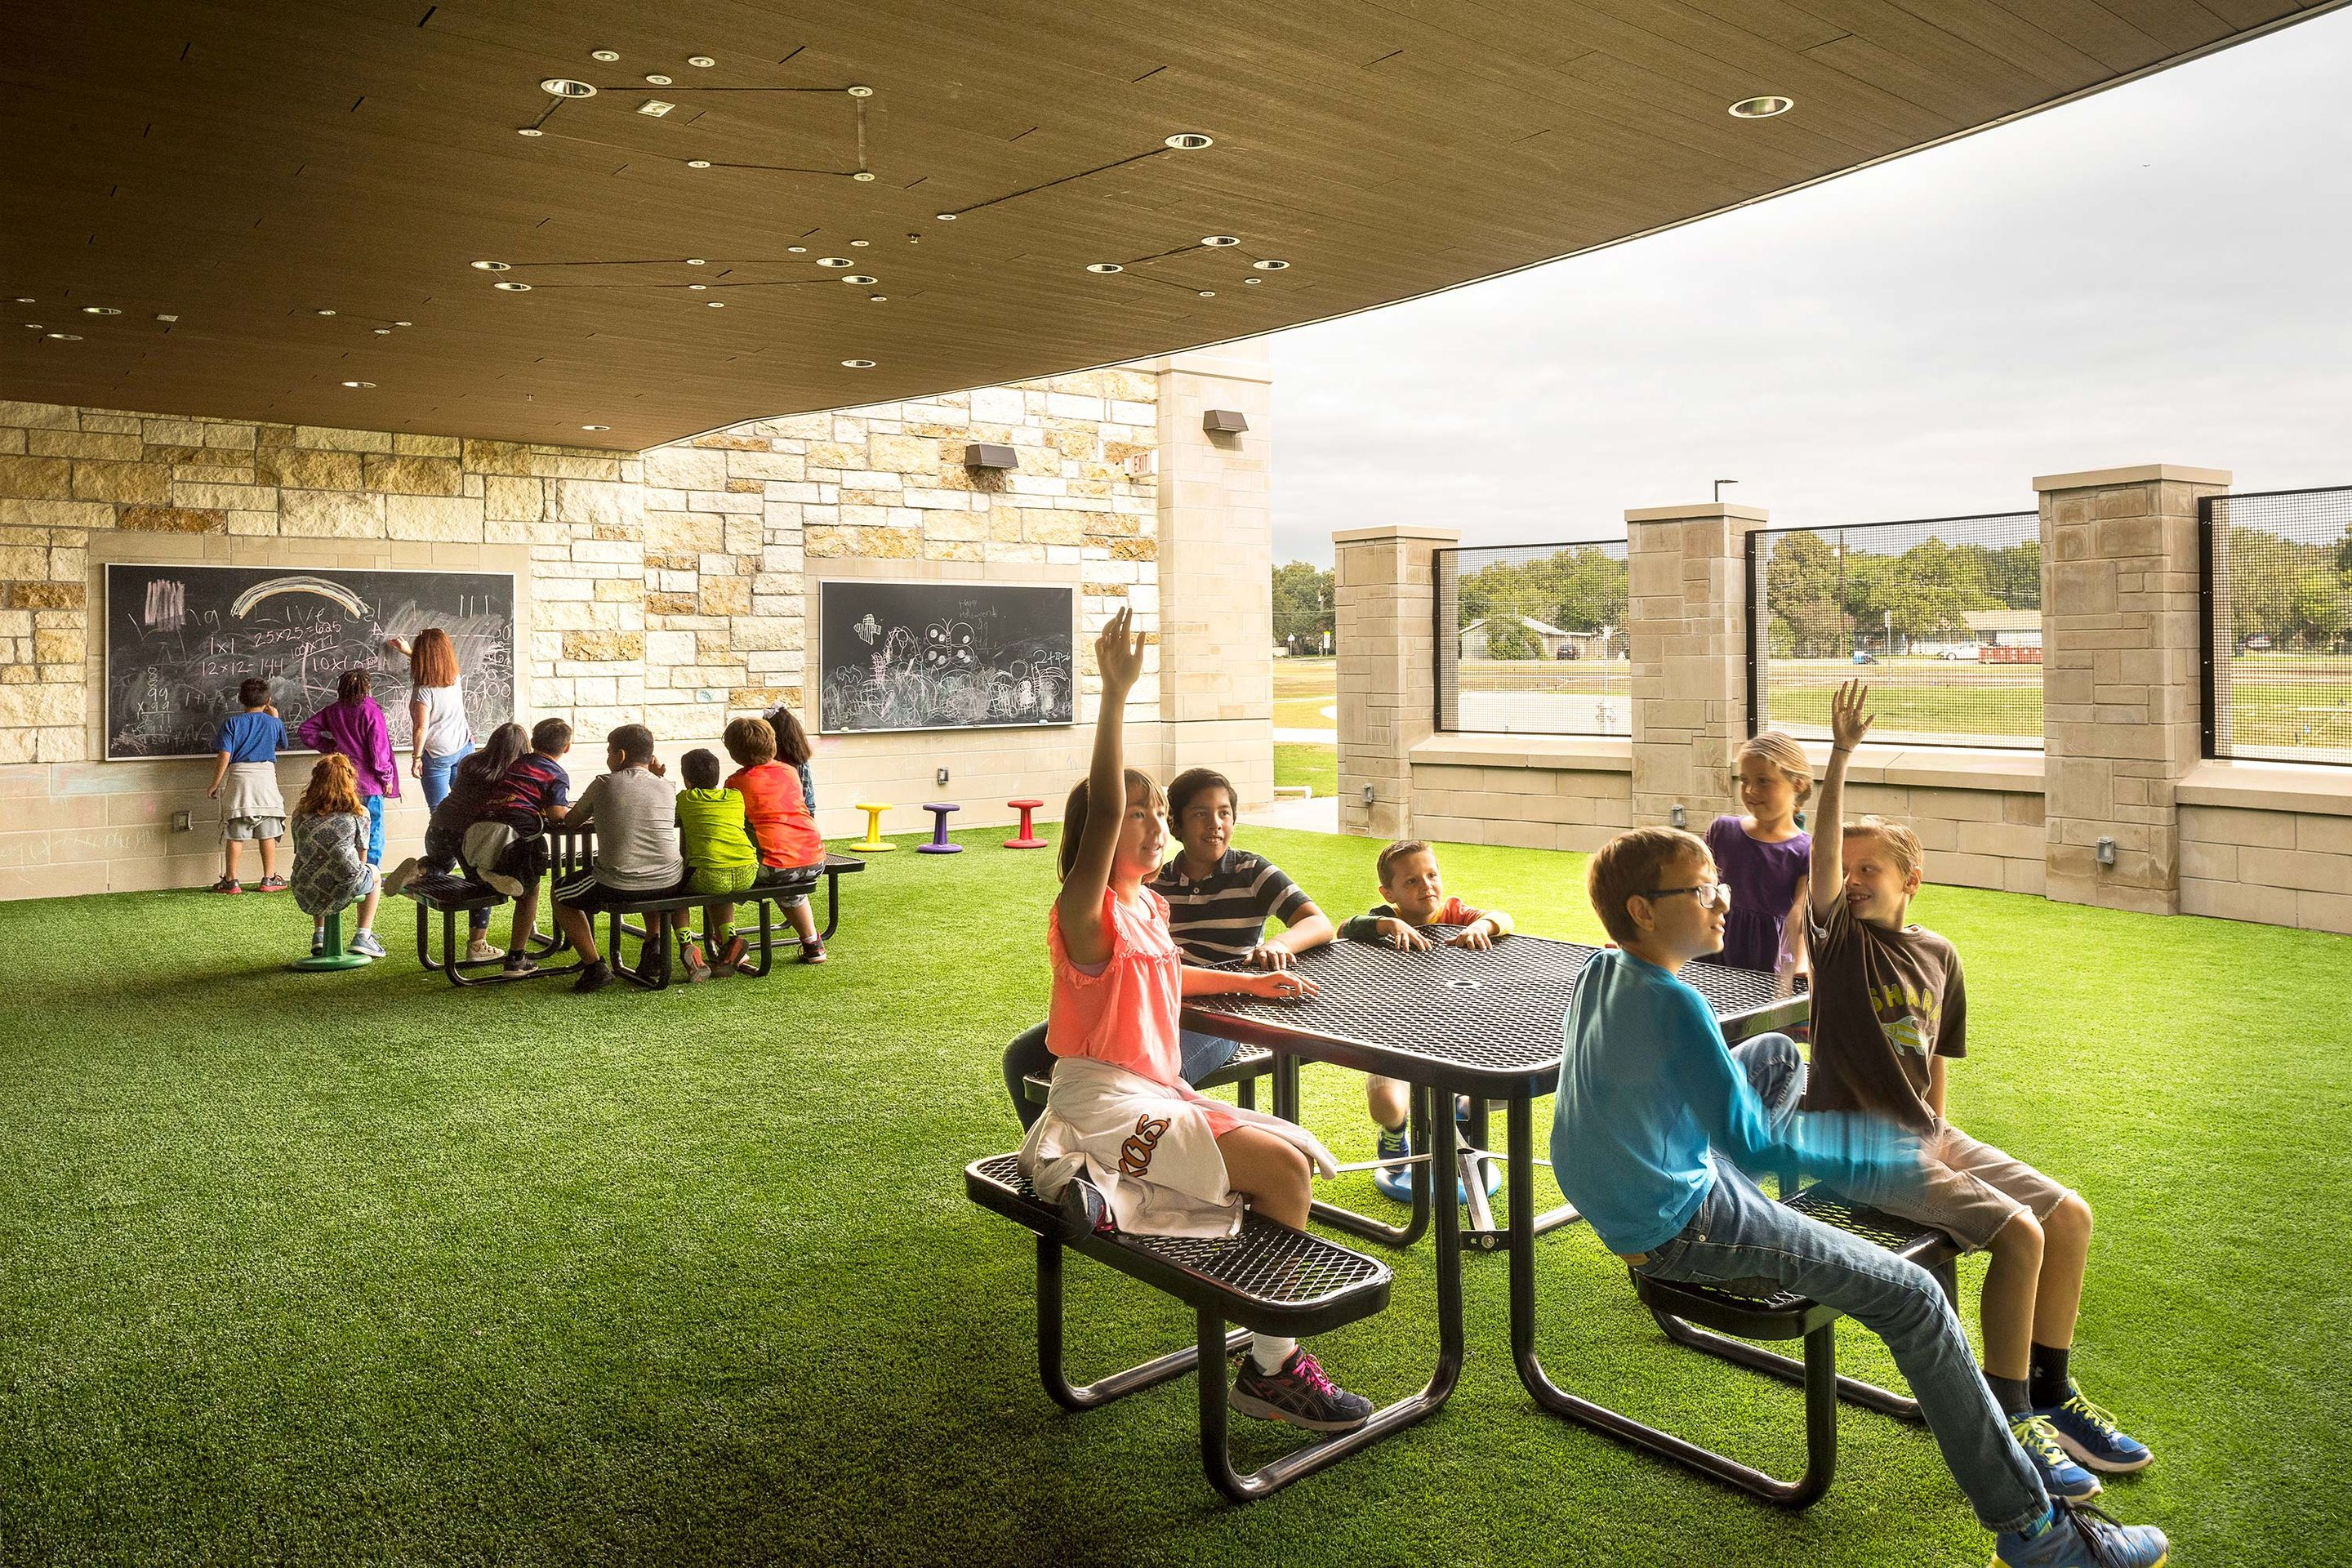 At Annie Purl Elementary School, a public school in Georgetown, Texas, the outdoor classroom is a multipurpose space used for play, instruction, making, science experiments, and collaborative activities.